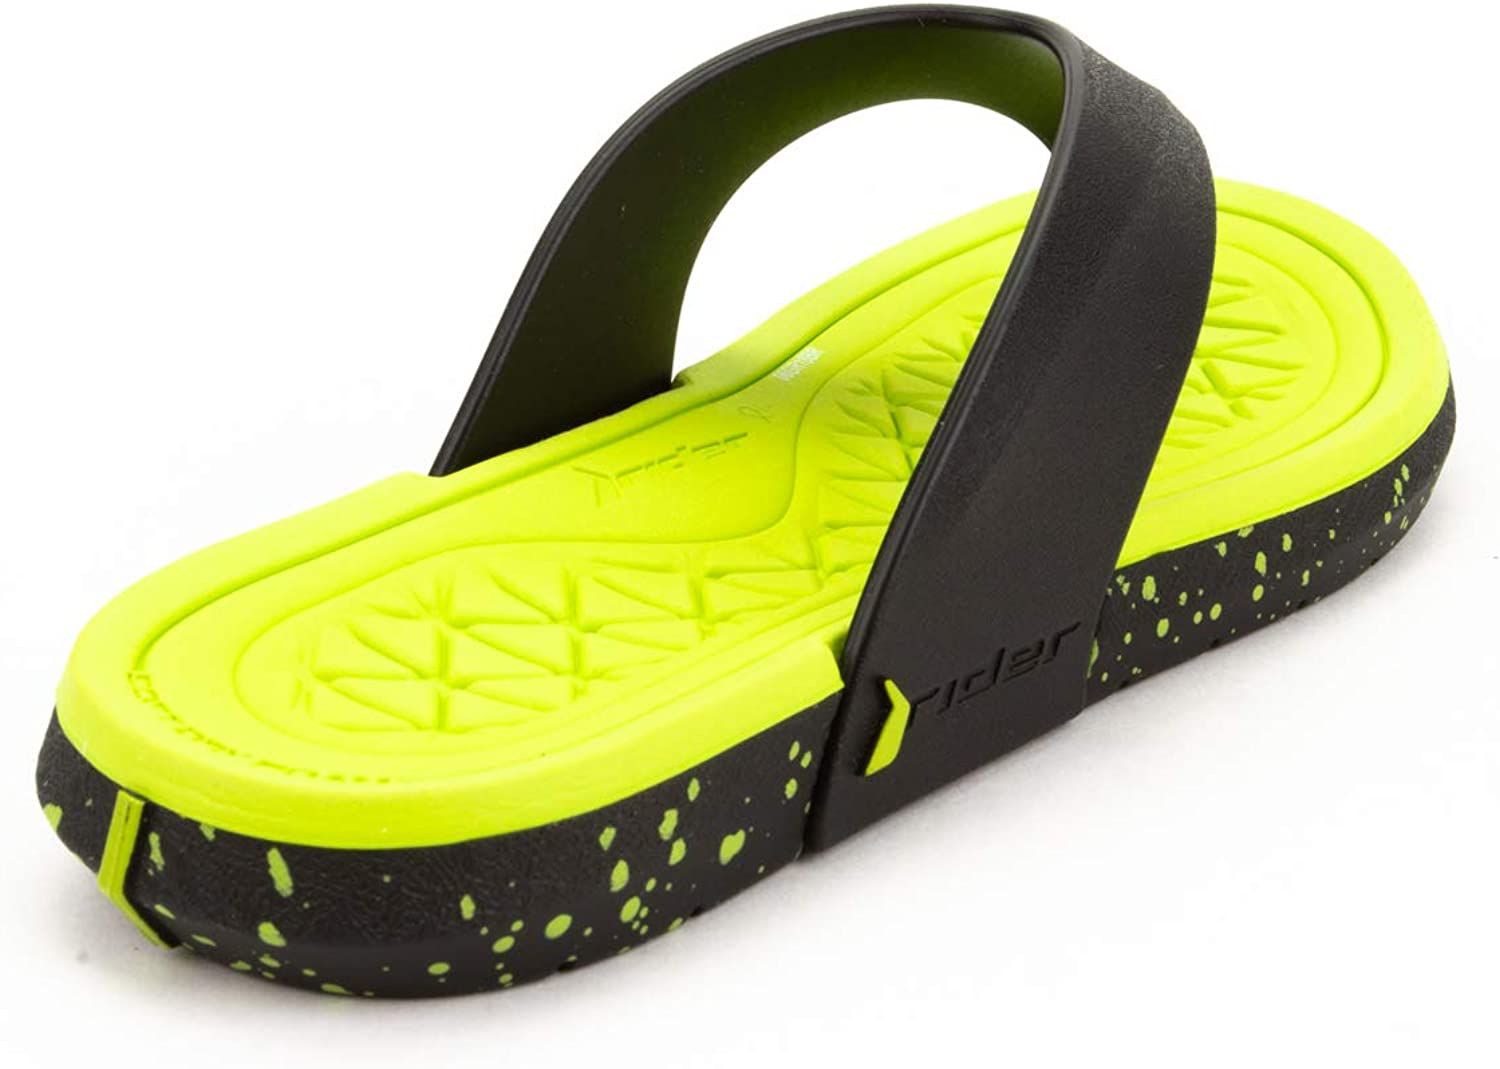 Rider Sandals Infinity Thong Kids Sandals